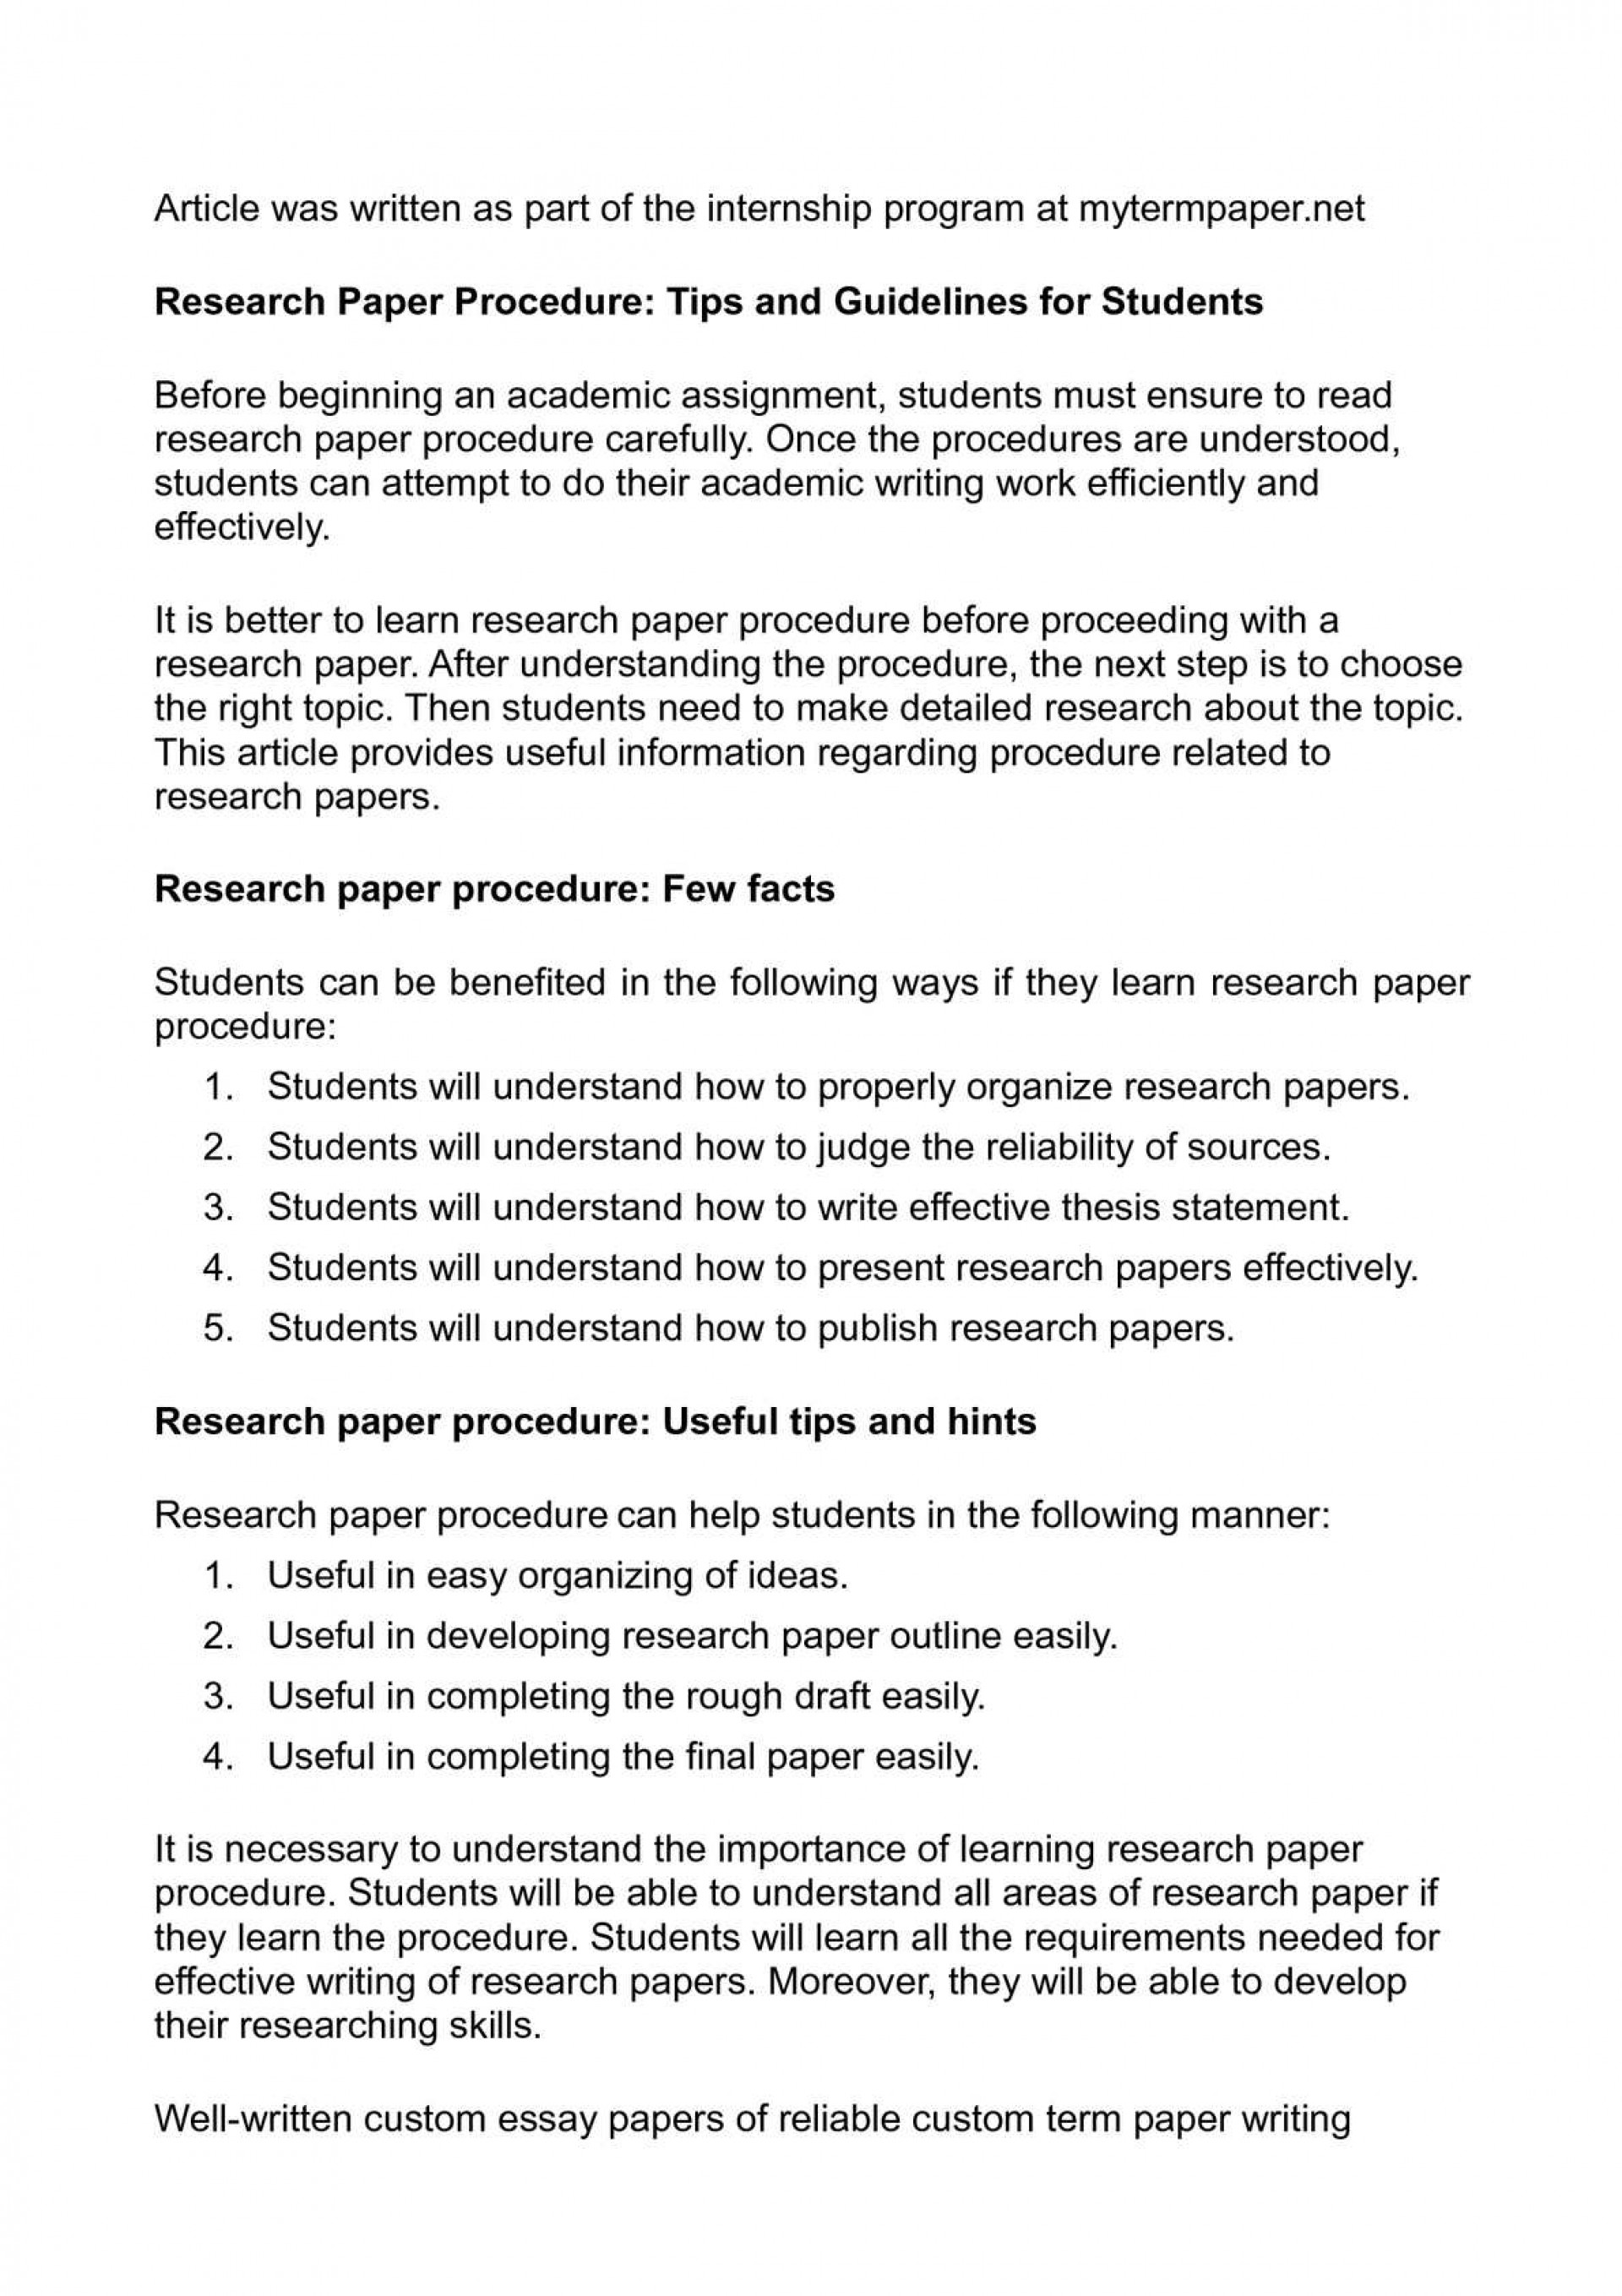 018 How To Do Research Paper Marvelous Notecards Fast A Outline In Apa 1920